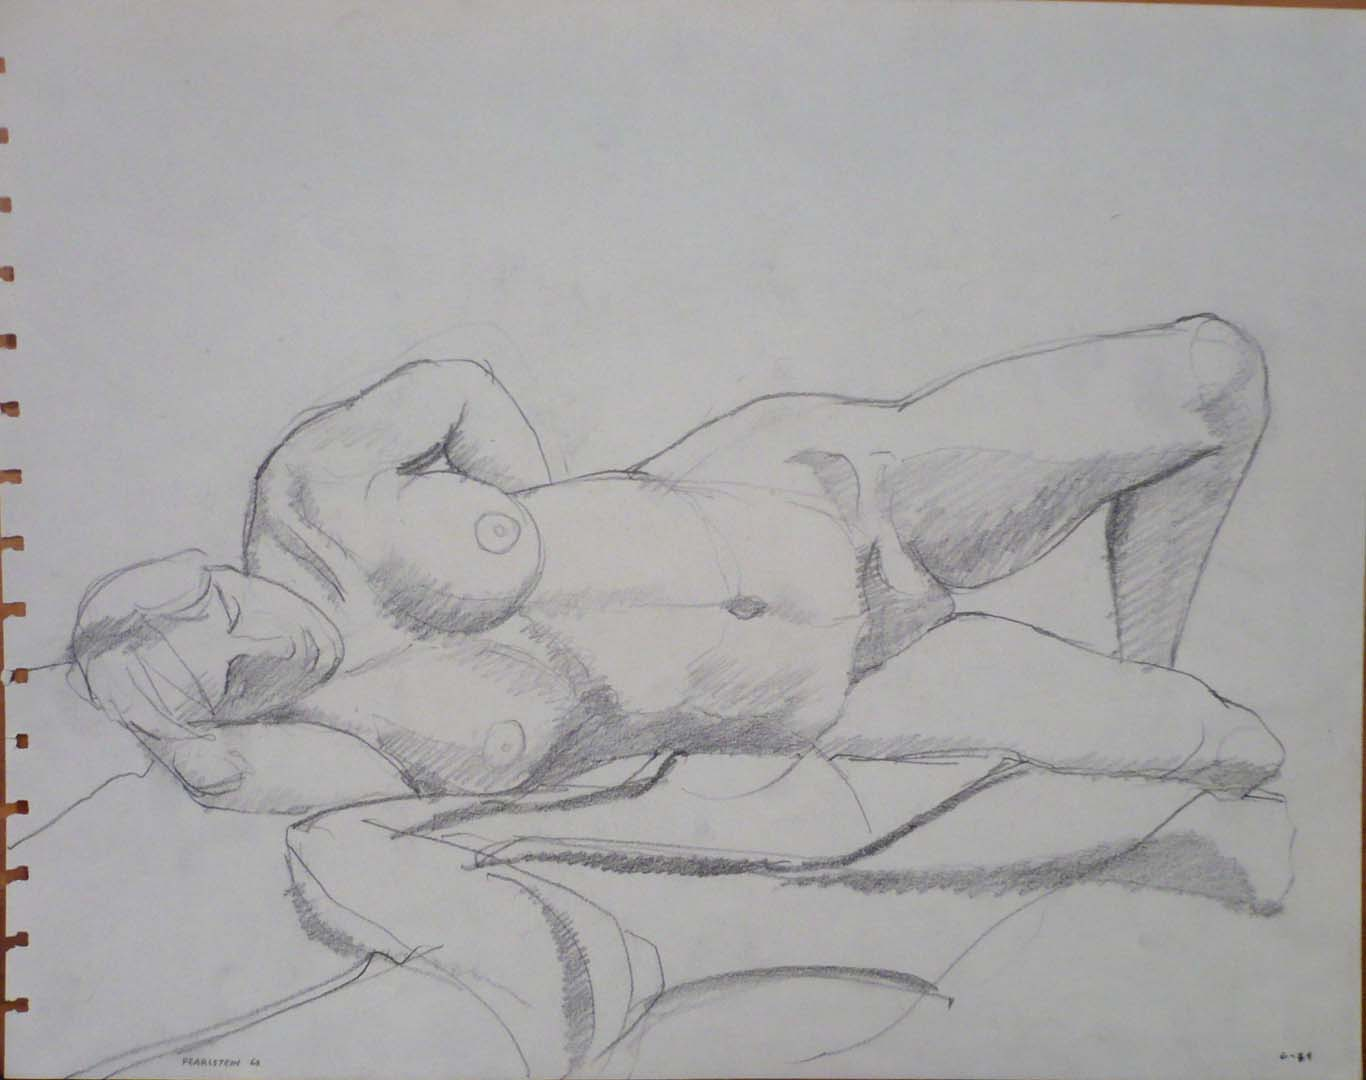 1963 Reclined Female Model on Drape Pencil 10.75 x 13.75